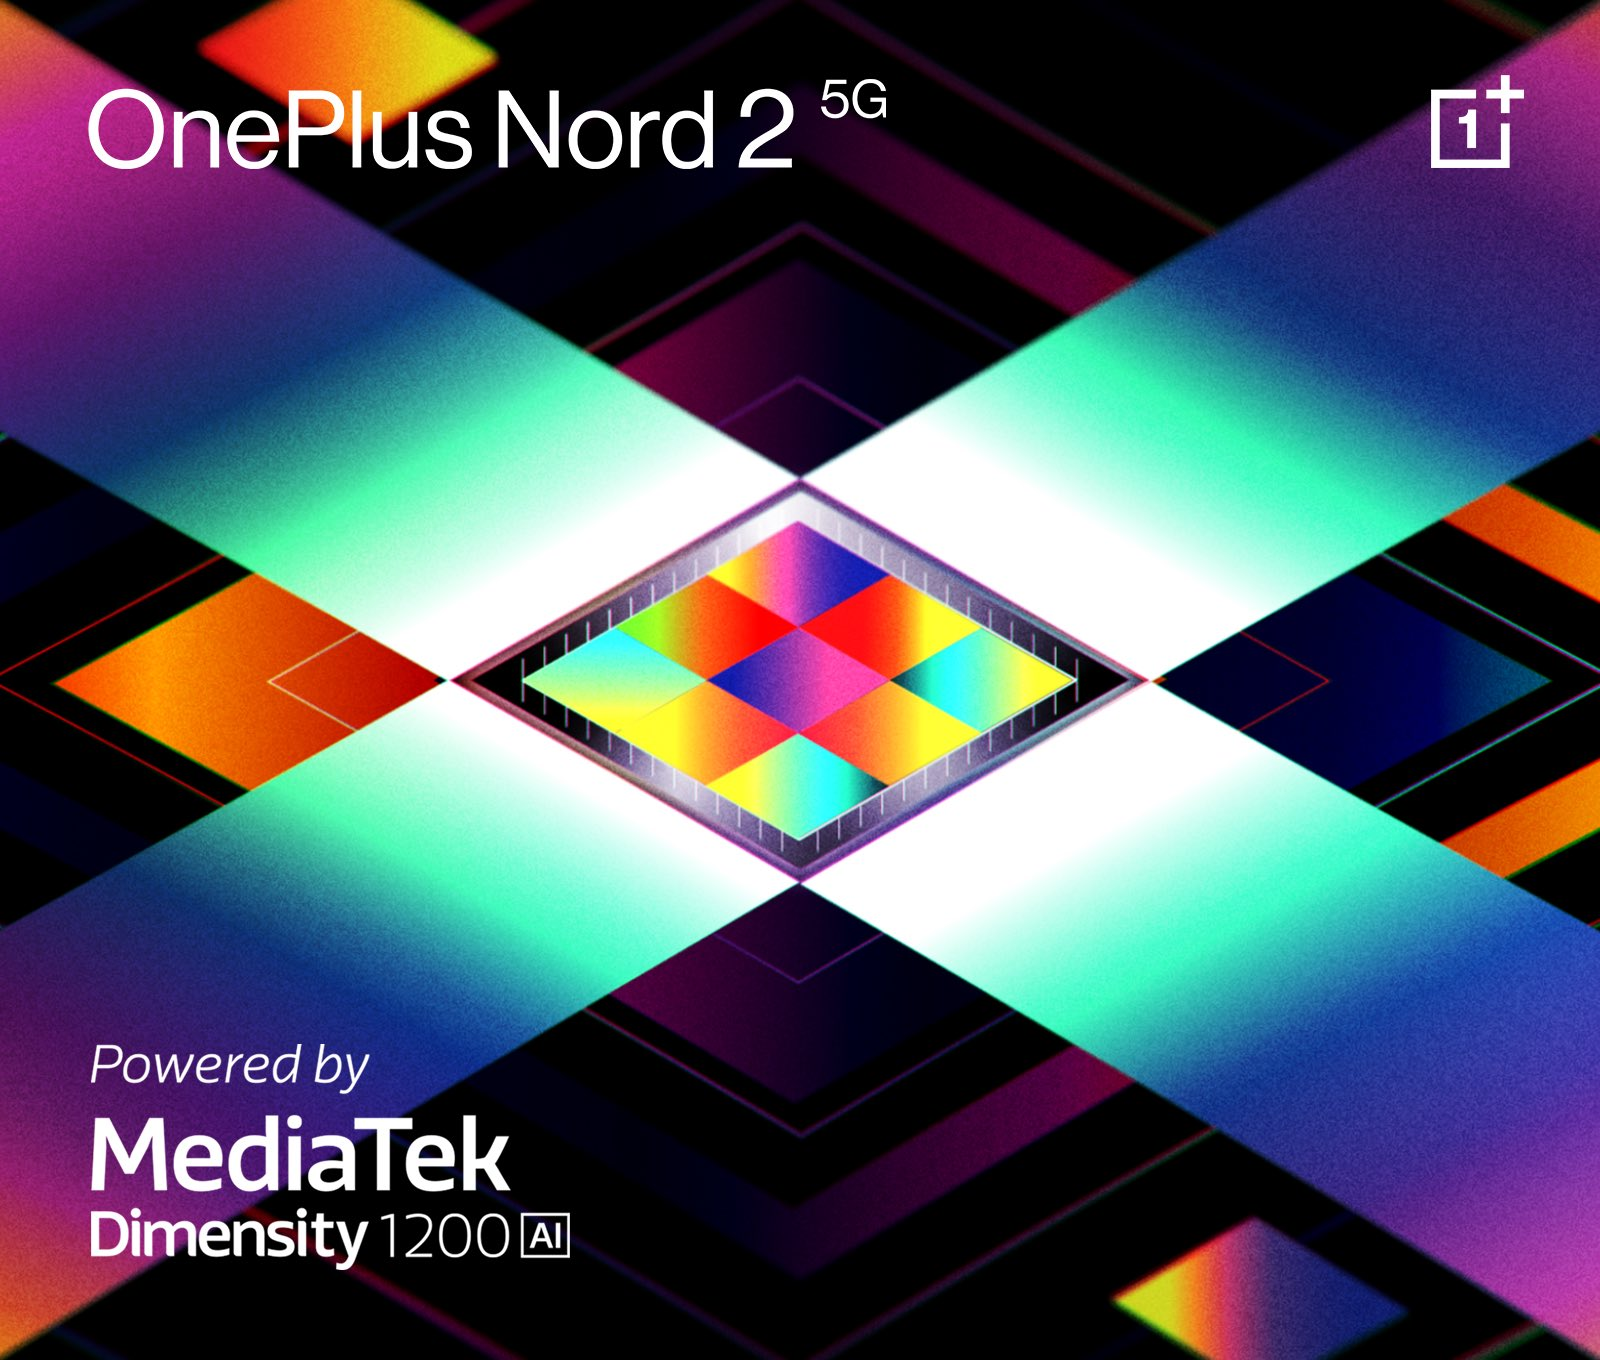 OnePlus Nord 2 5G confirmed to feature MediaTek Dimensity 1200 chipset